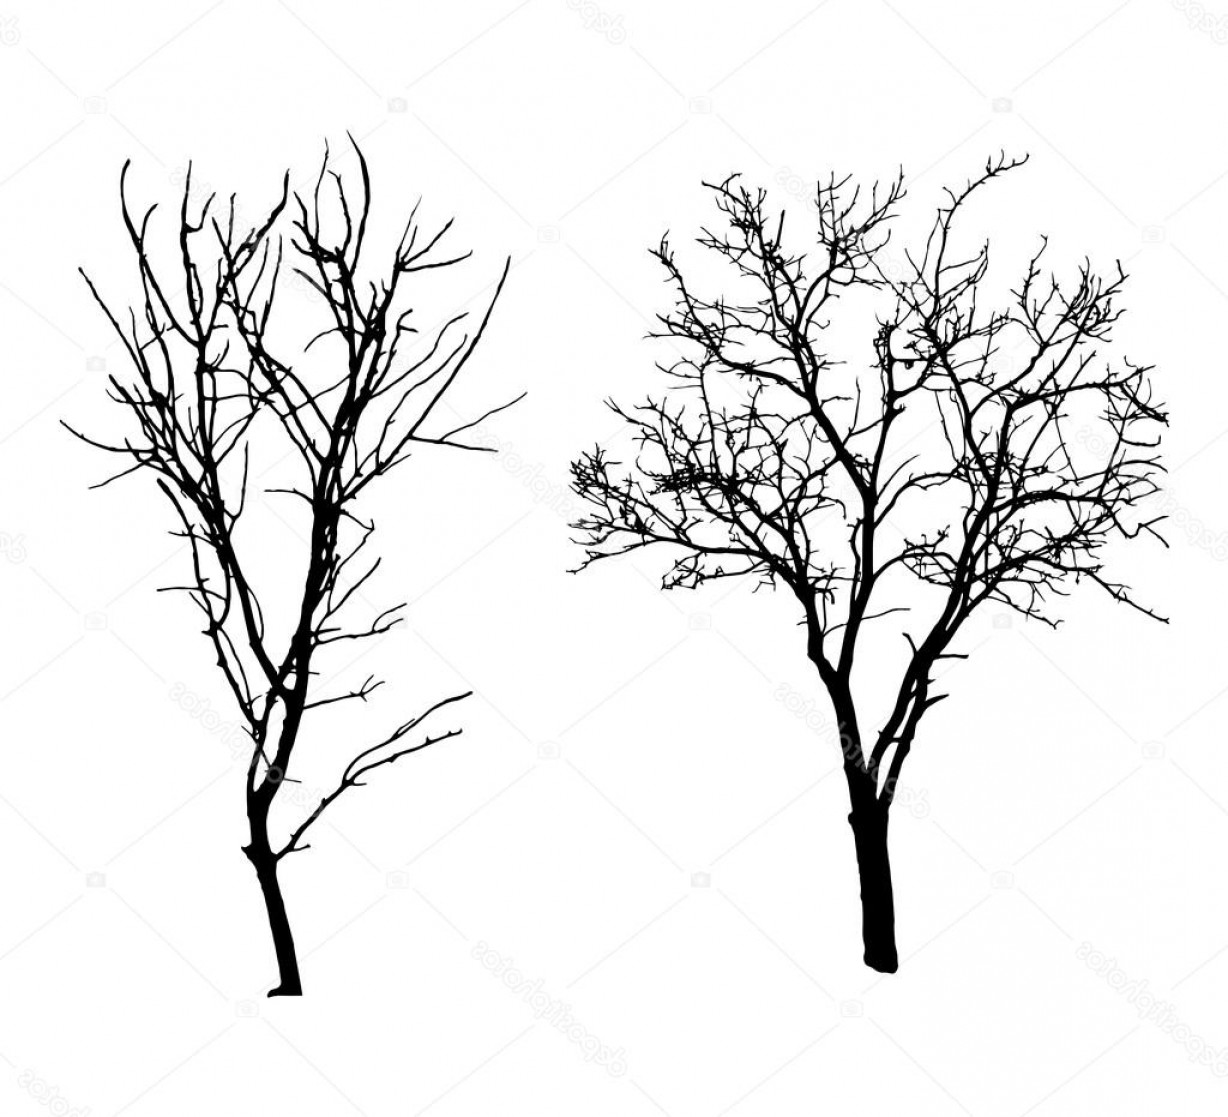 Winter Tree Silhouette Vector: Stock Illustration Two Winter Tree Black Silhouettes